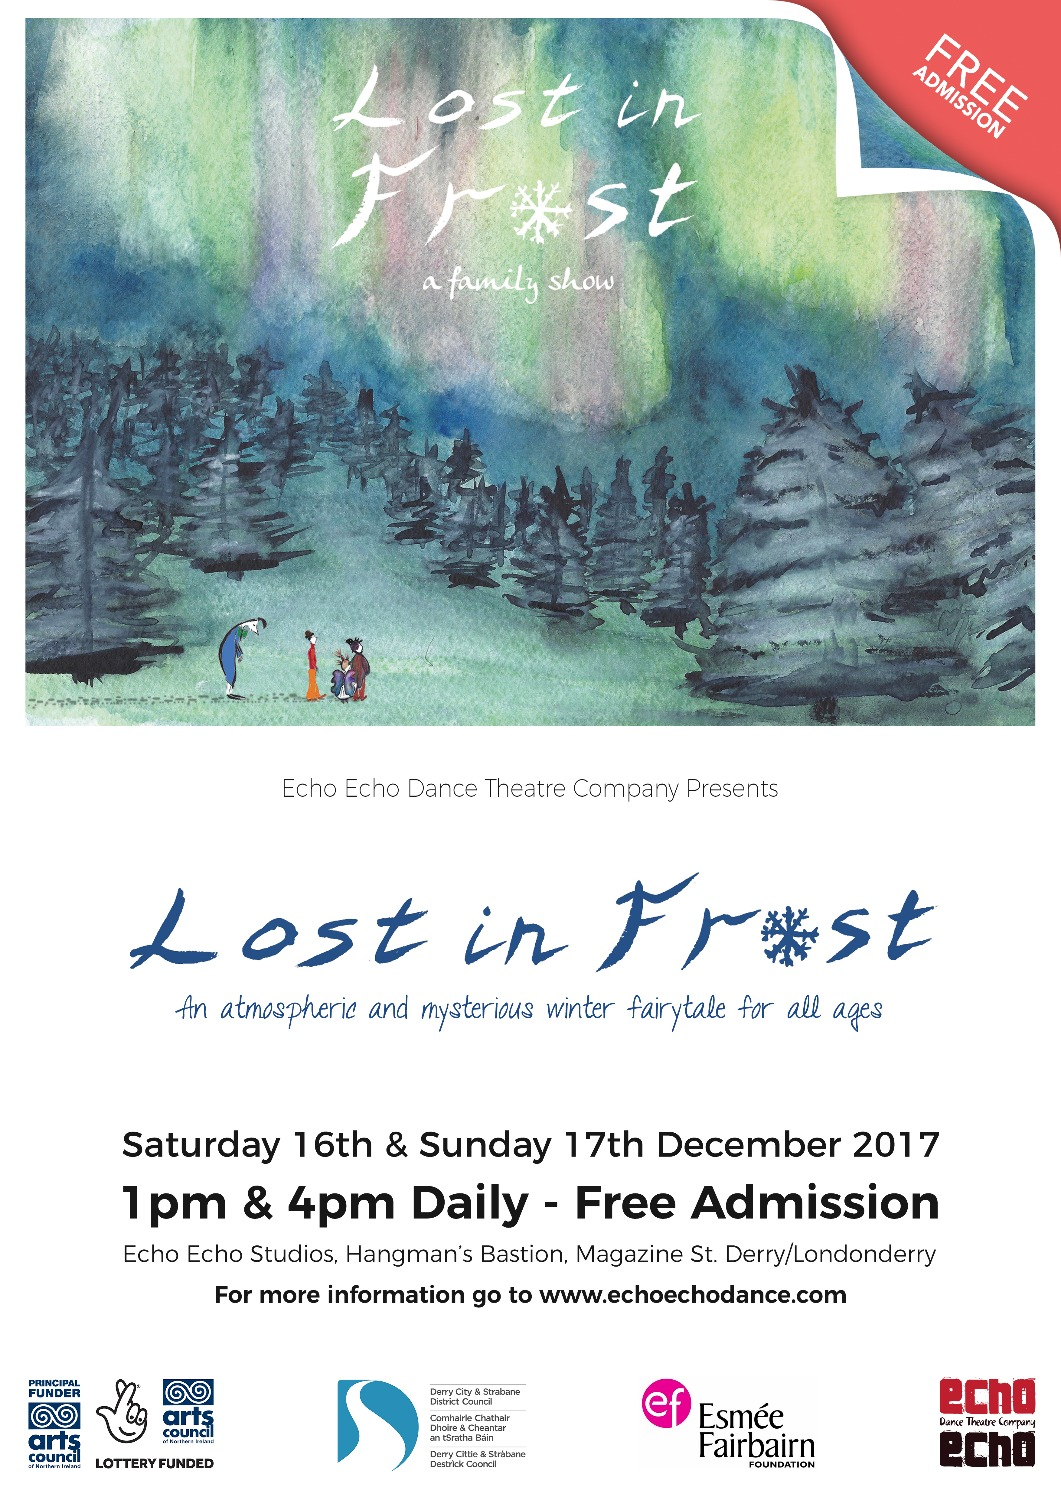 Lost in Frost 2017 Derry artwork